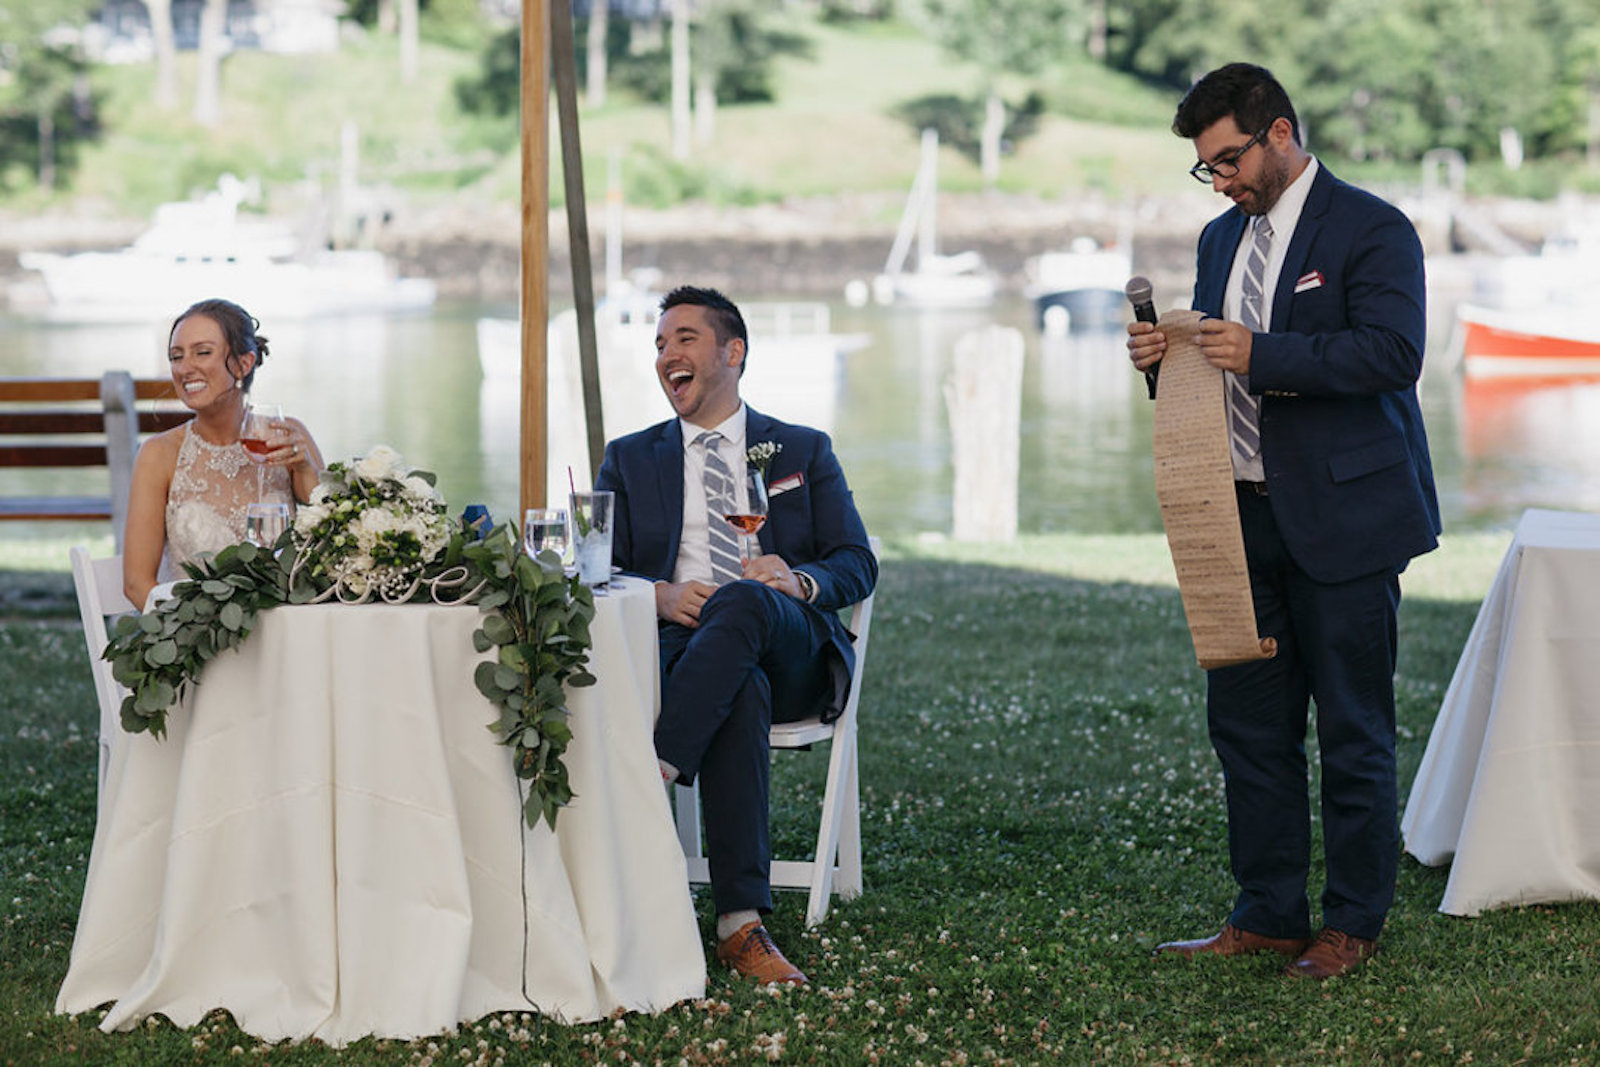 bride and groom laughing as best man gives speech at a wedding reception